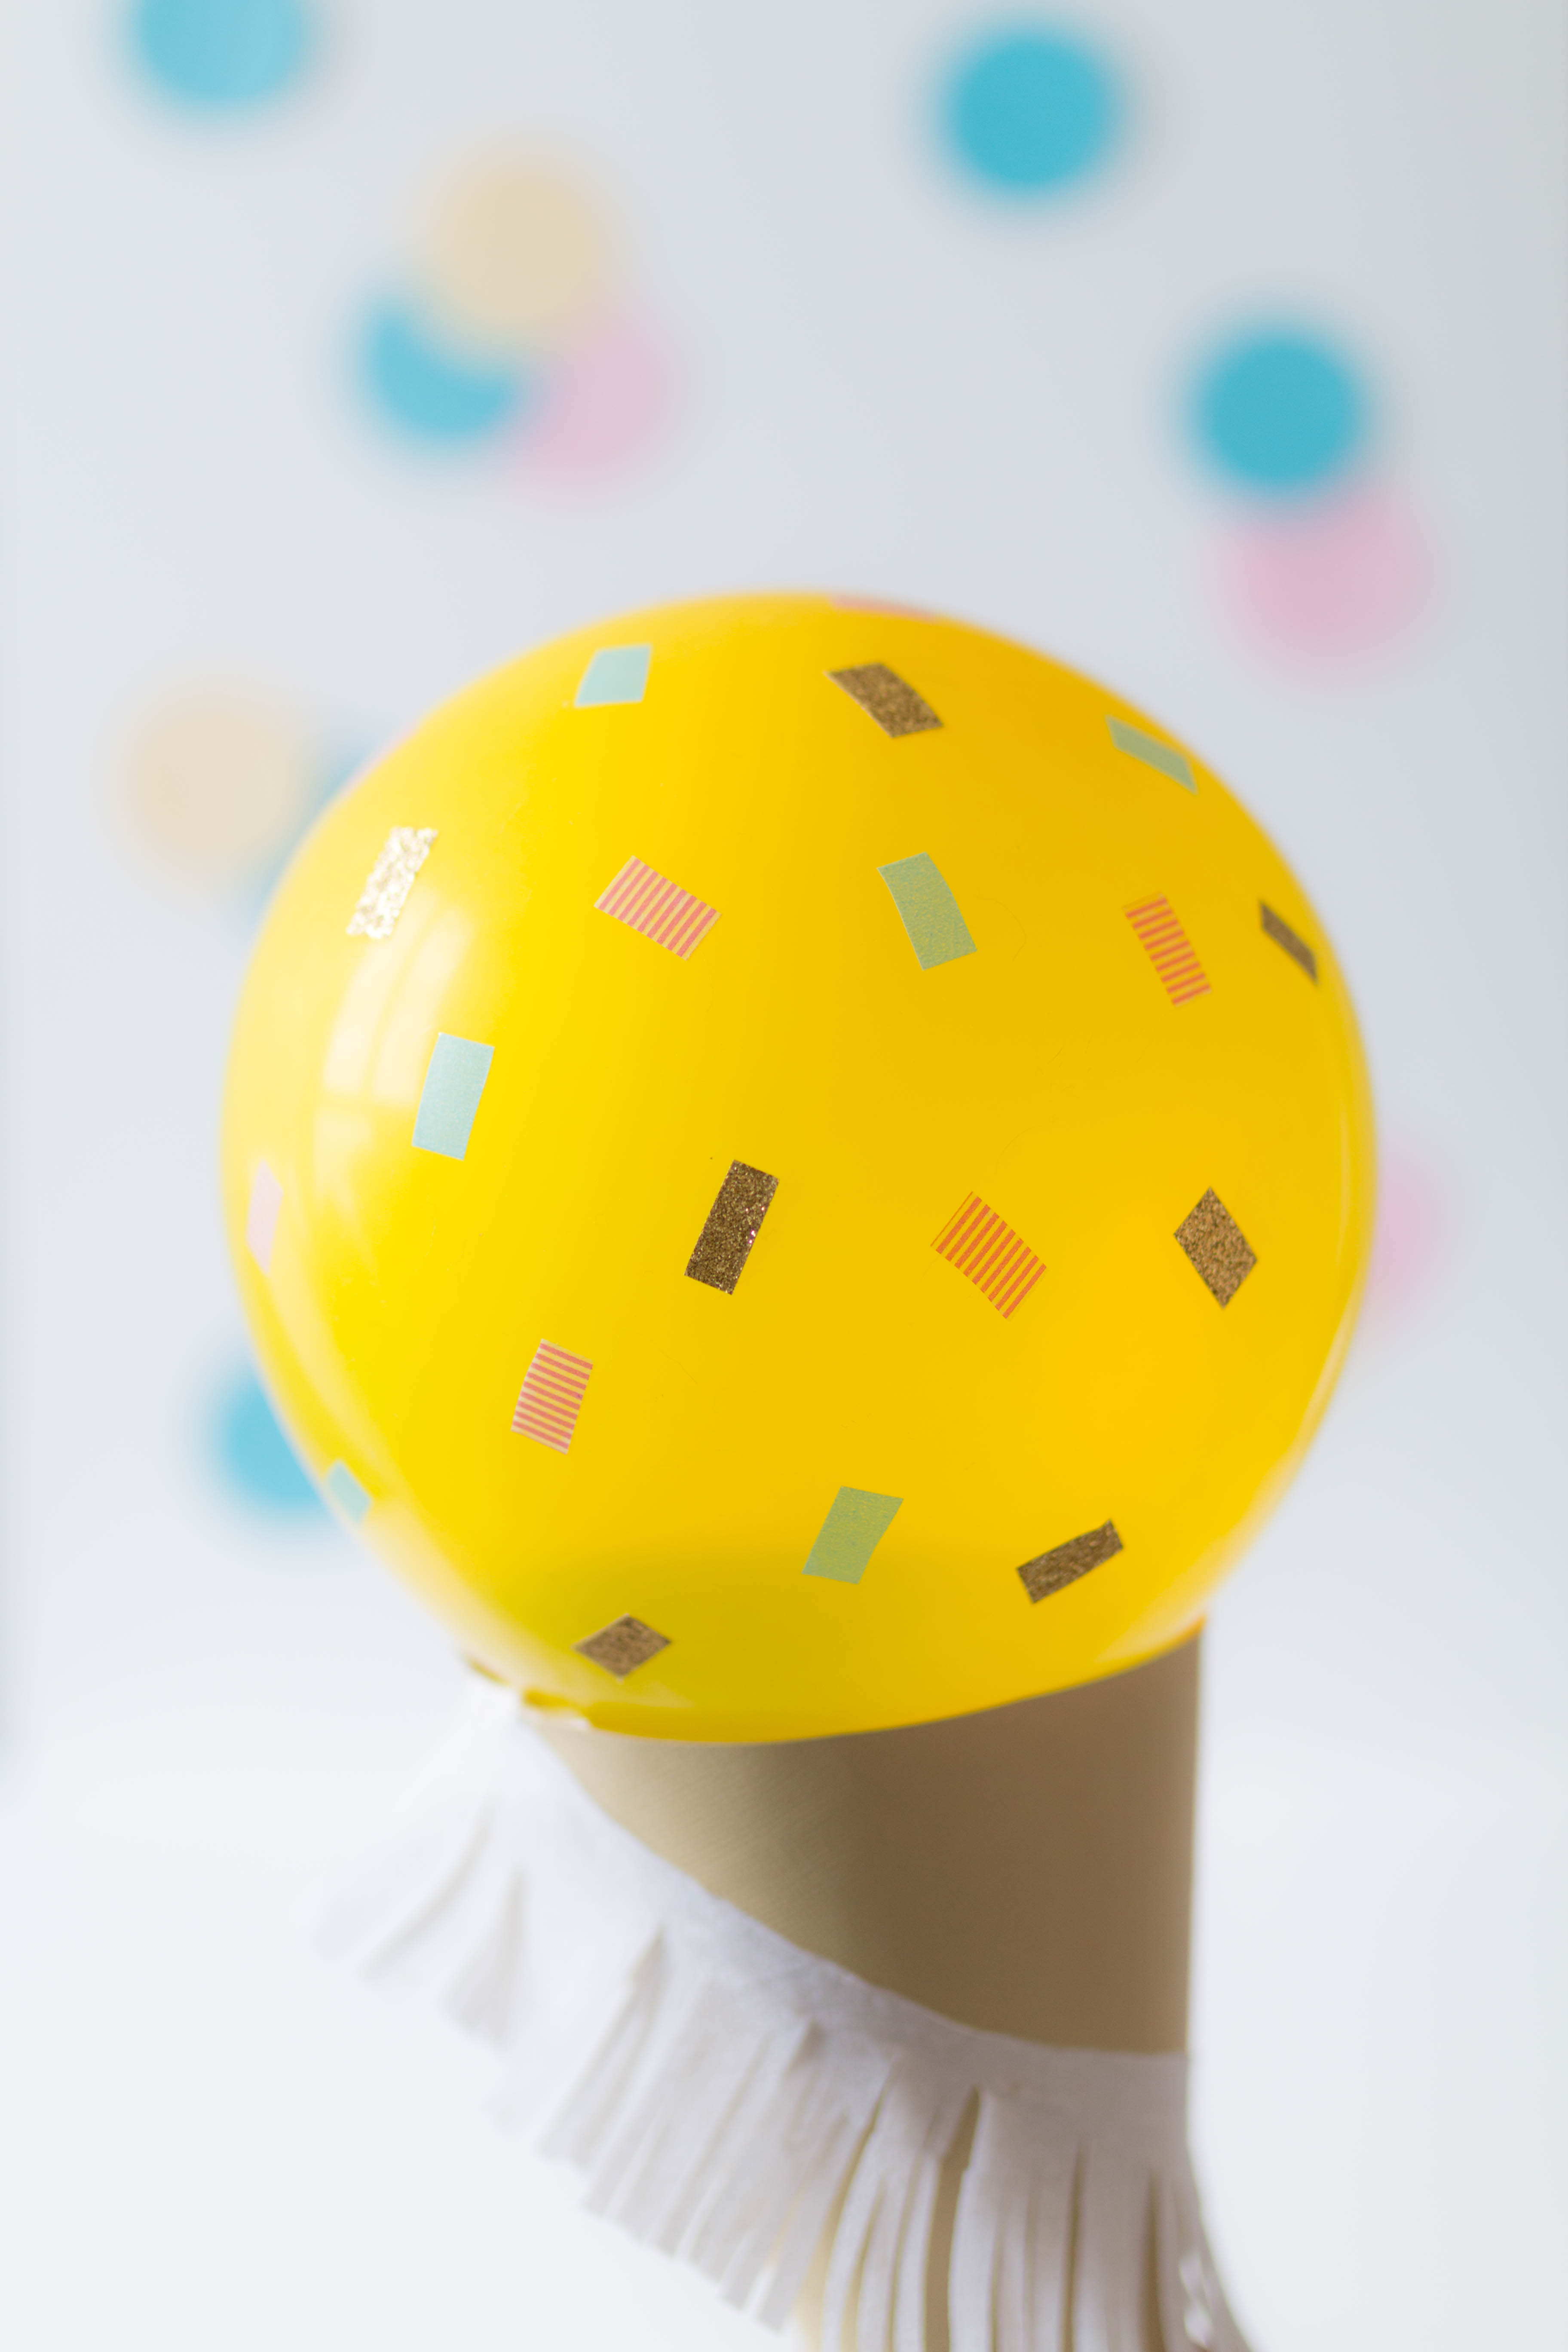 Ice cream balloon DIY 18 | SP4NK BLOG